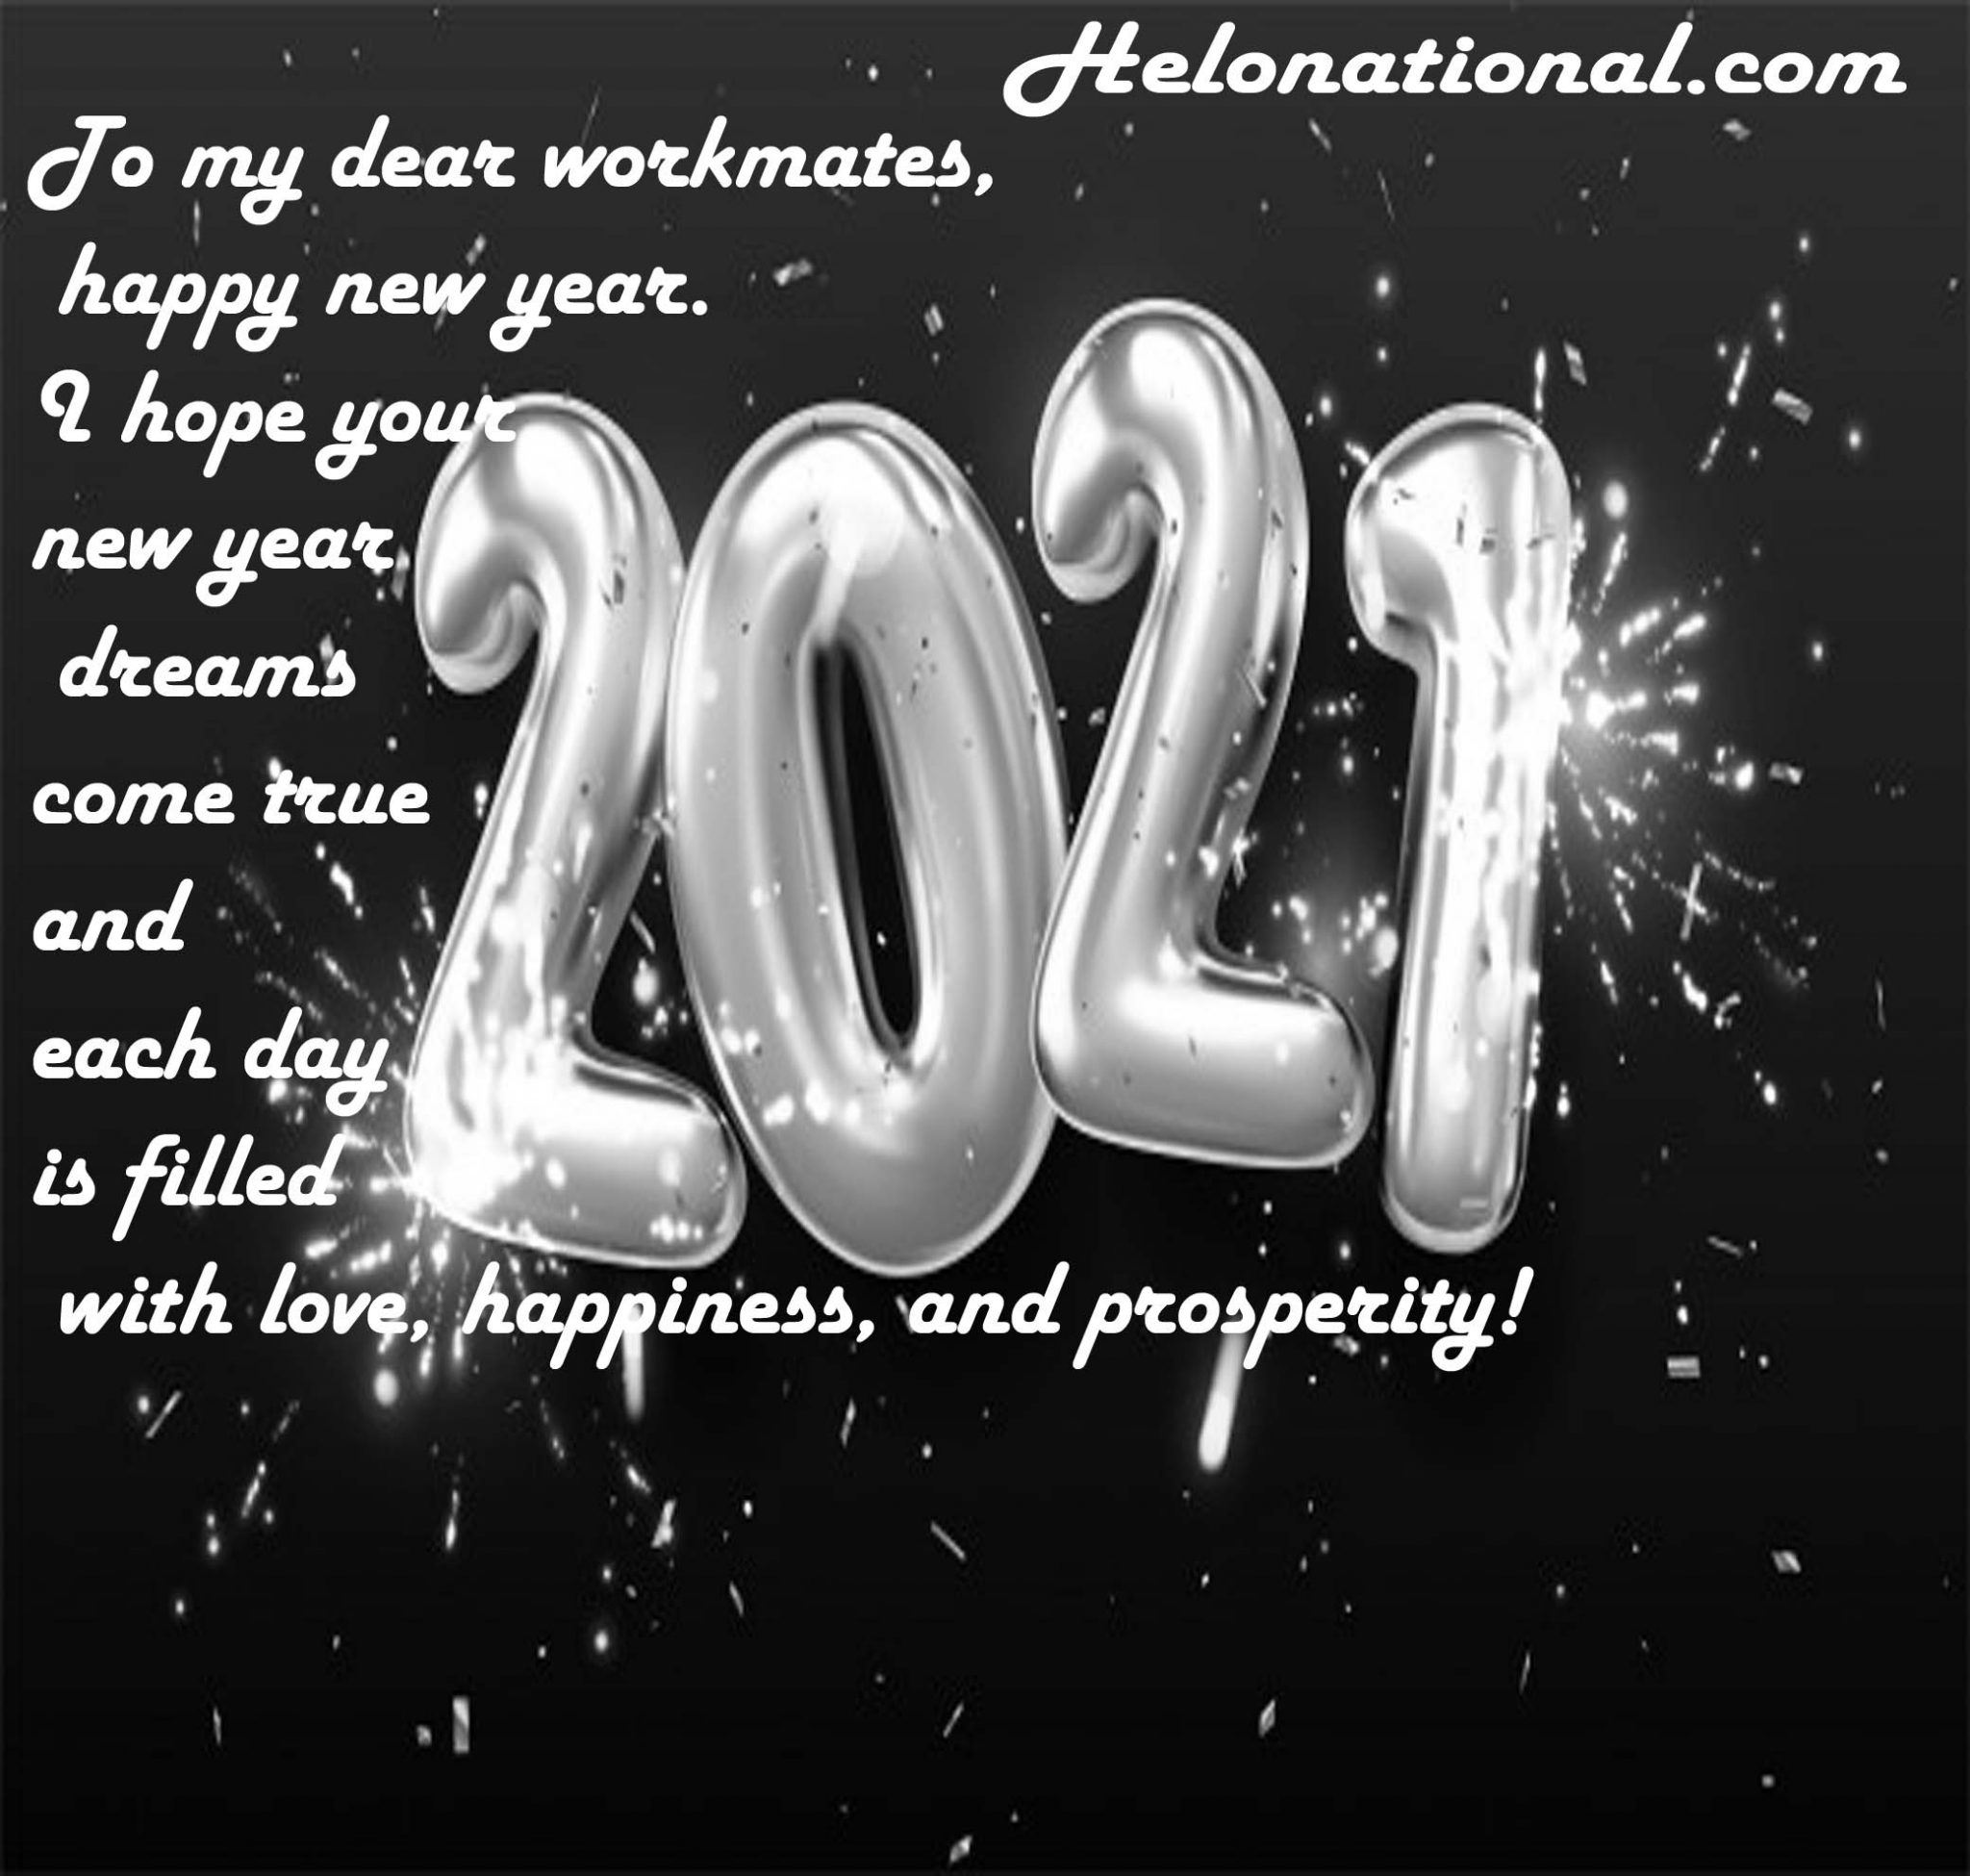 HNy 2021 messages for colleagues